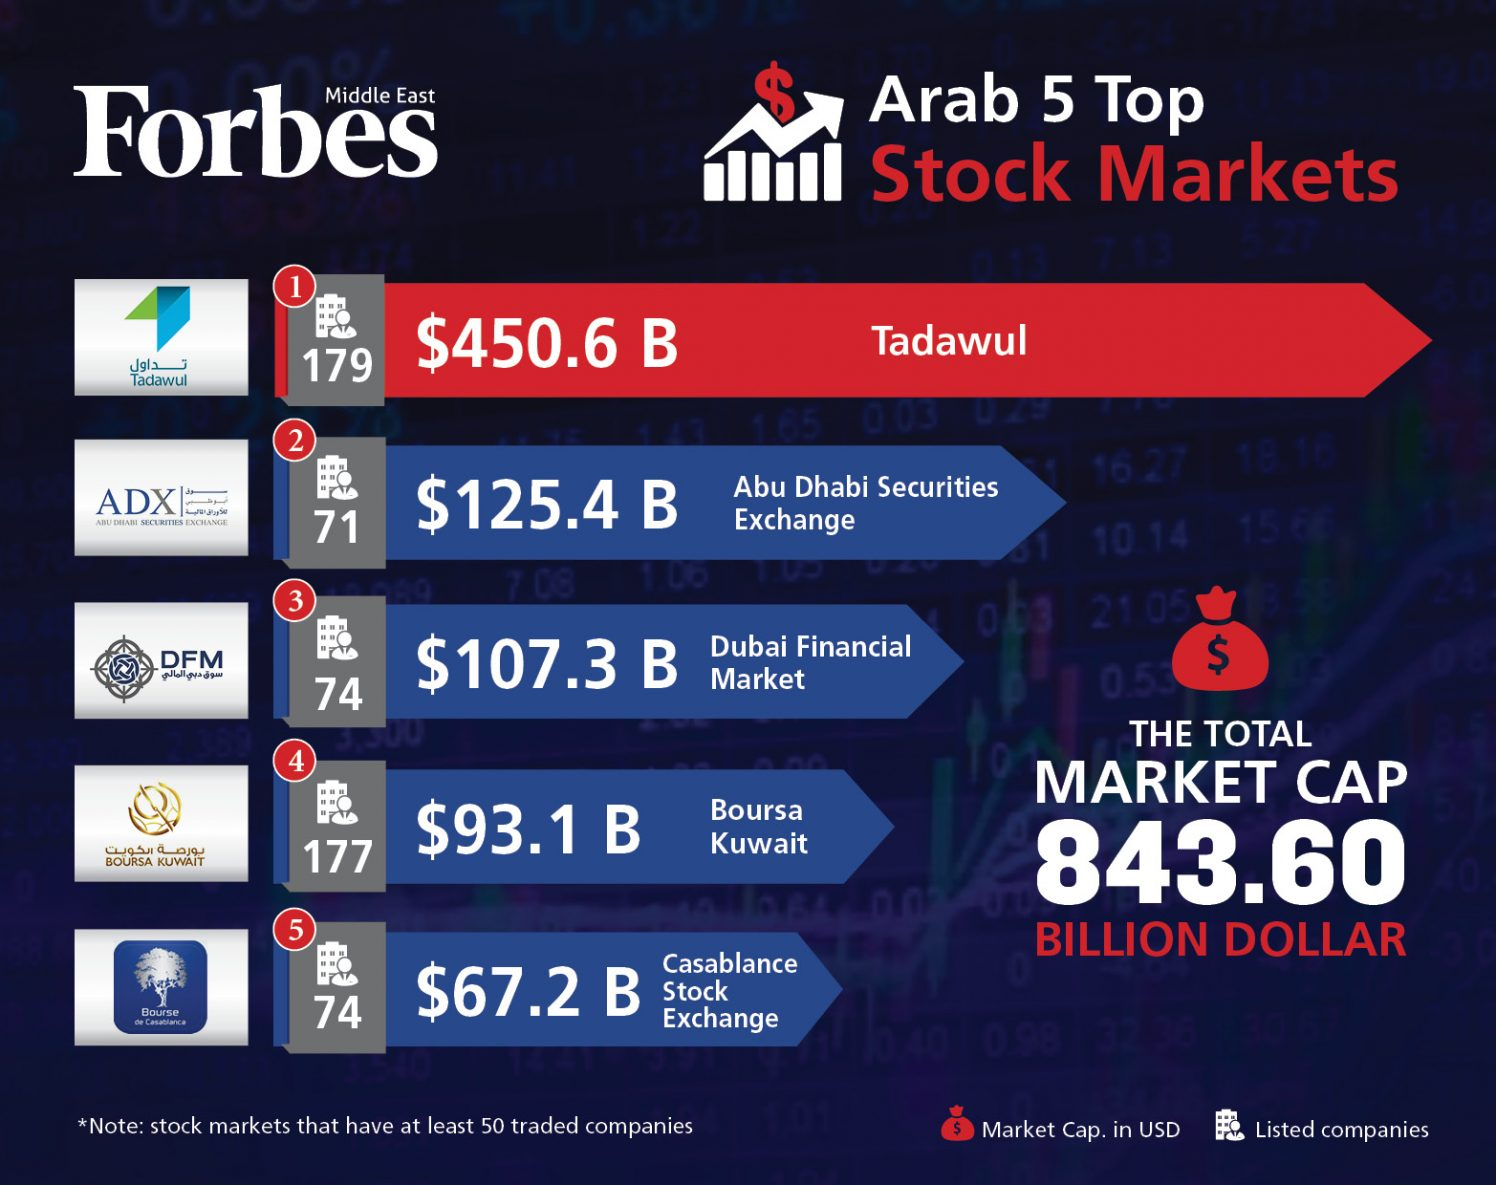 Top 5 Arab Stock Markets - Forbes Middle East